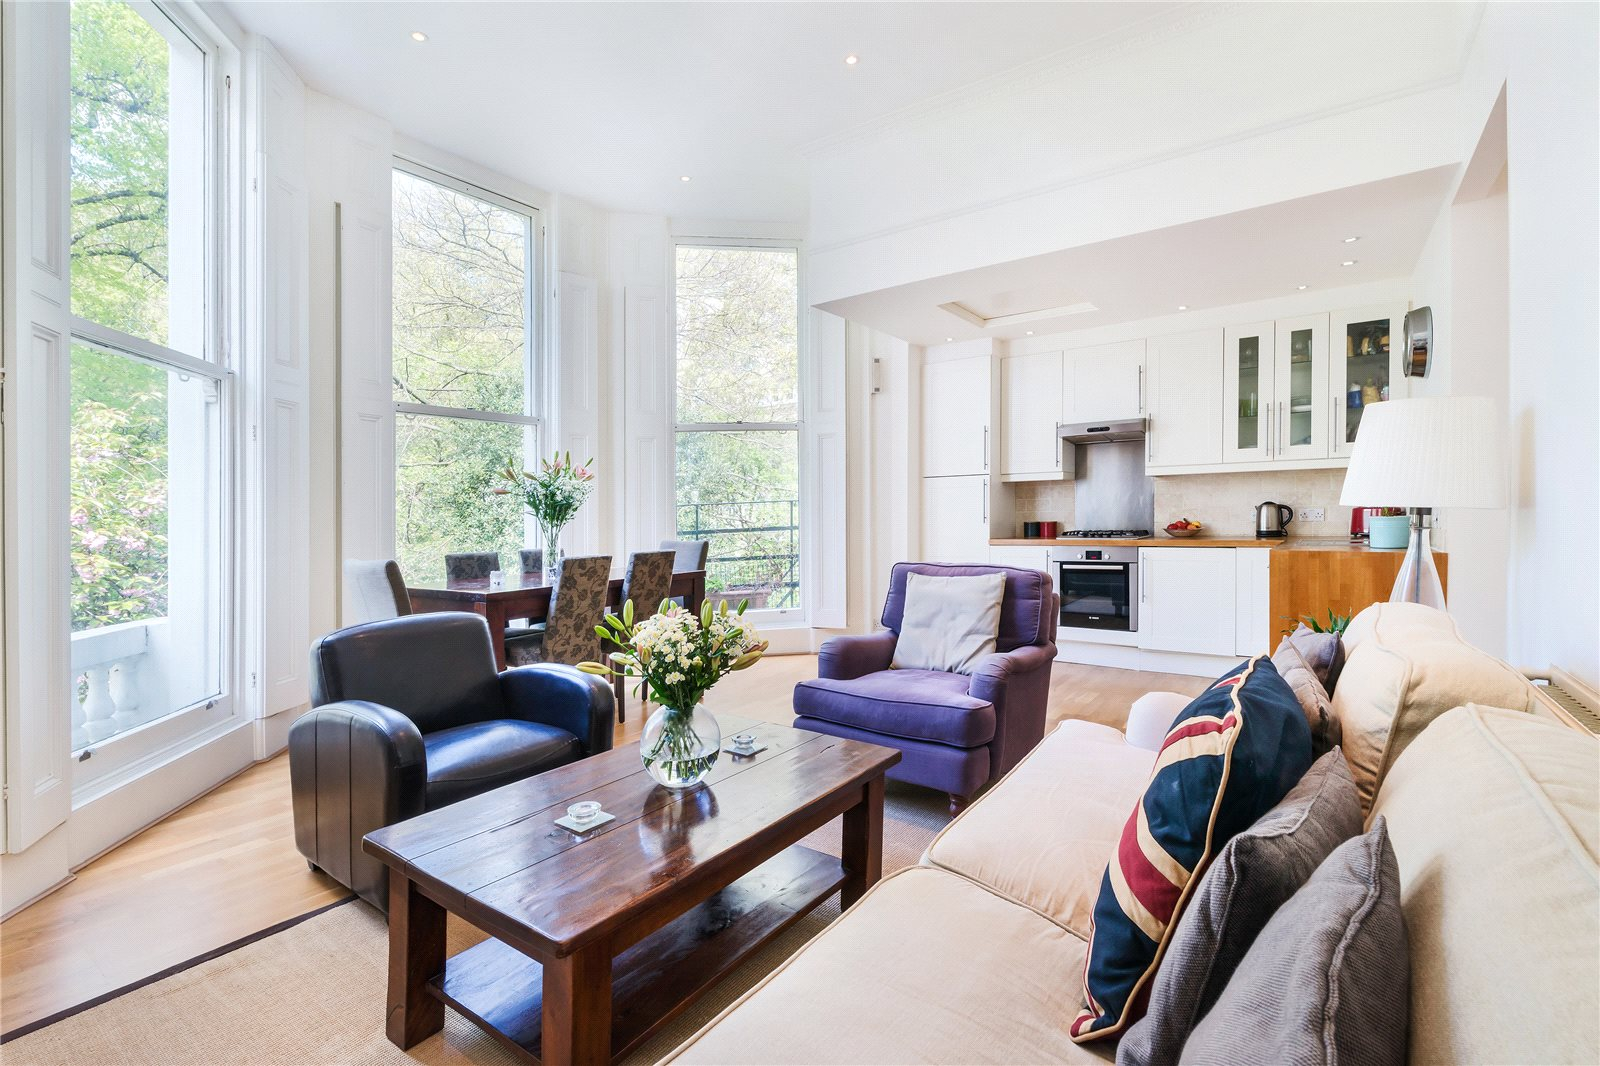 Appartement pour l Vente à Cornwall Gardens, South Kensington, London, SW7 South Kensington, London, Angleterre